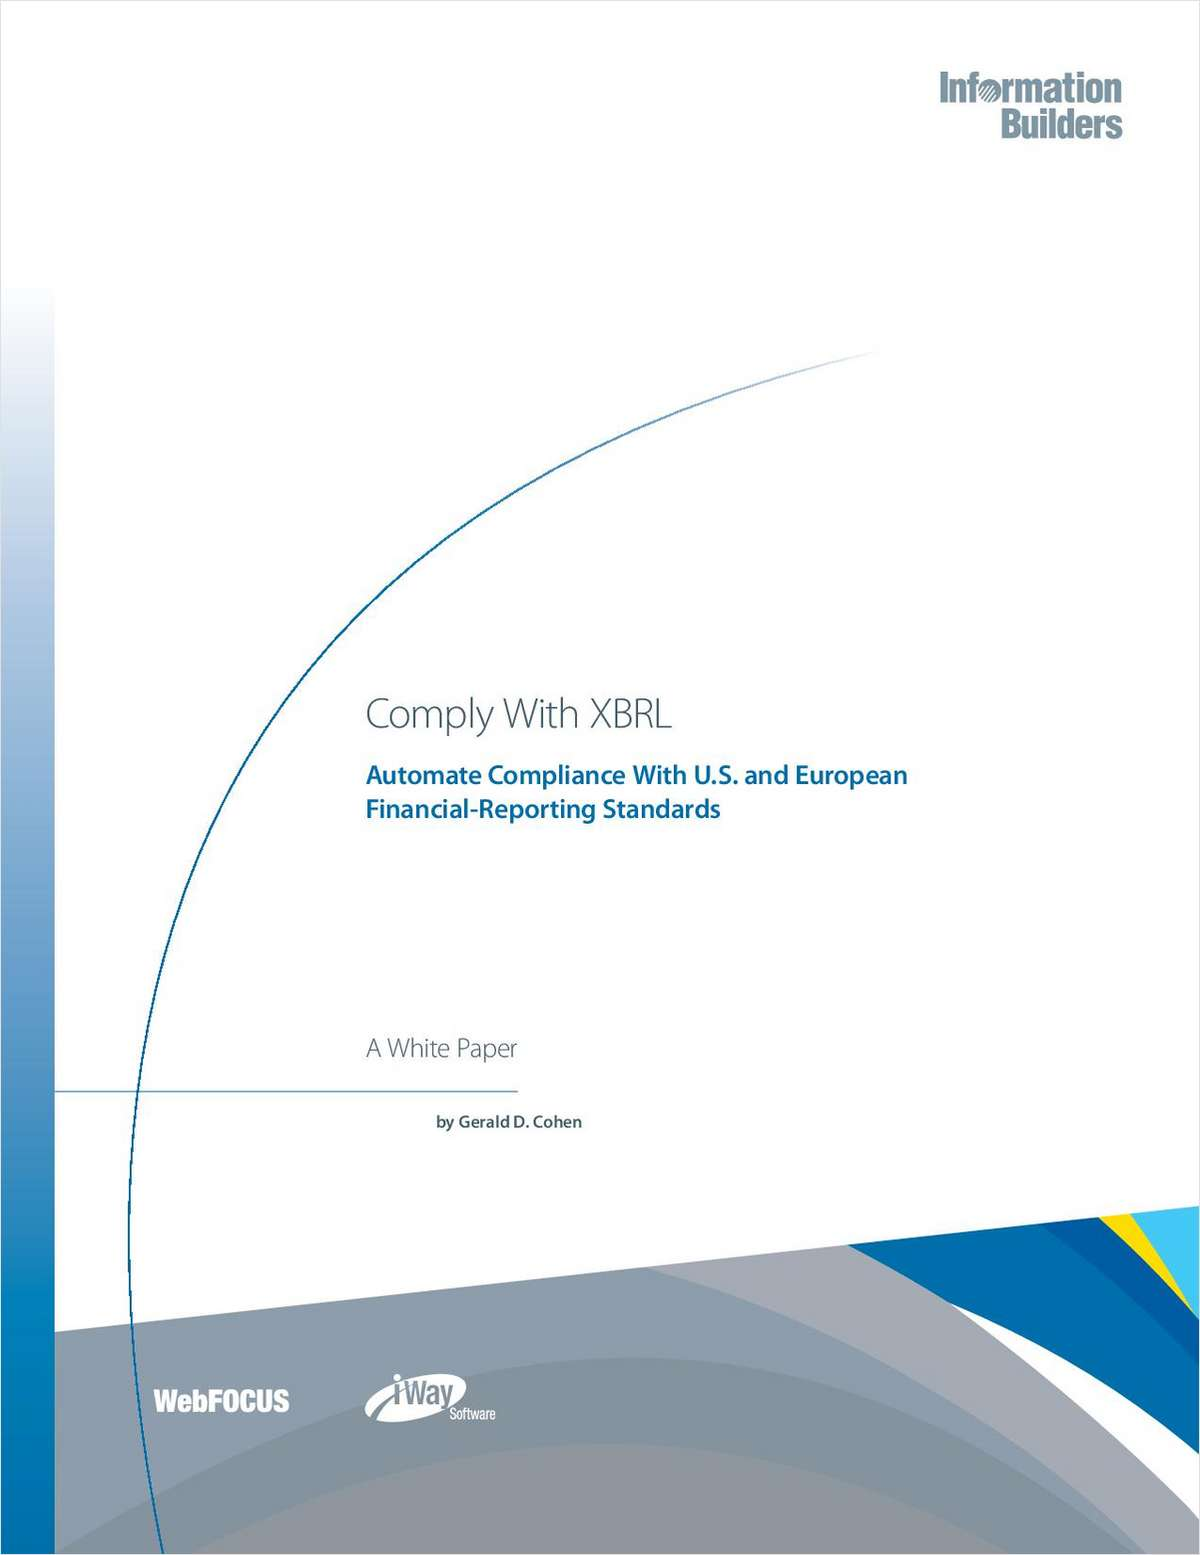 Comply With XBRL: Automate Compliance With U.S. and European Financial-Reporting Standards